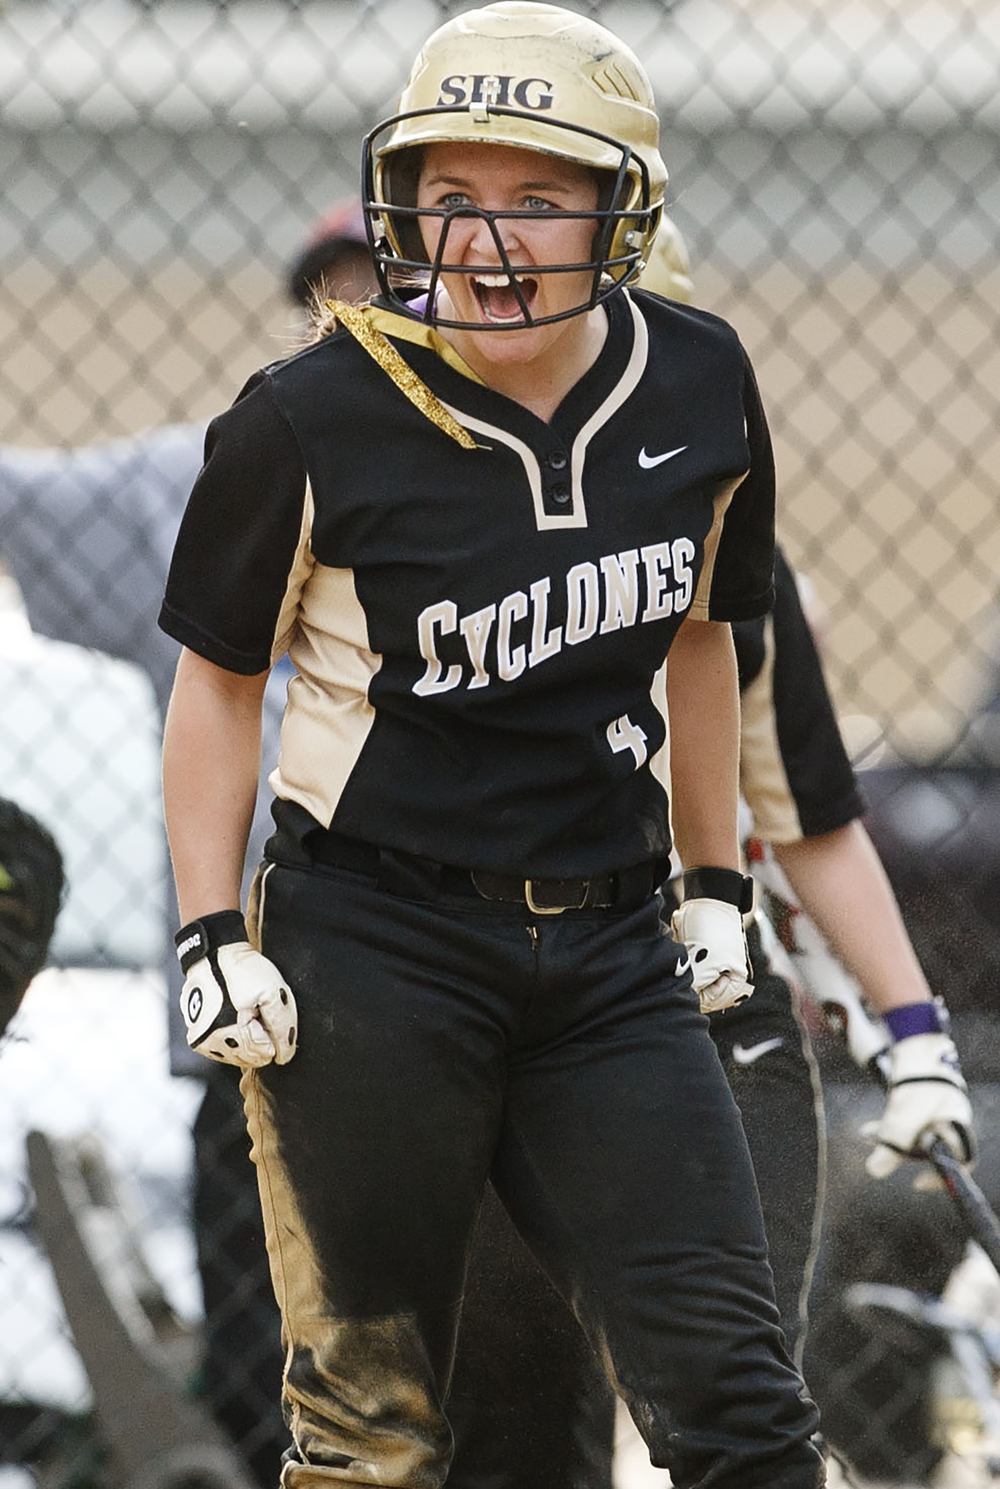 Sacred Heart-Griffin's Katie McLean lets out at yell after scoring in the 5th inning against Chatham Glenwood at Sacred Heart-Griffin West Wednesday April 8, 2015. Ted Schurter/The State Journal-Register